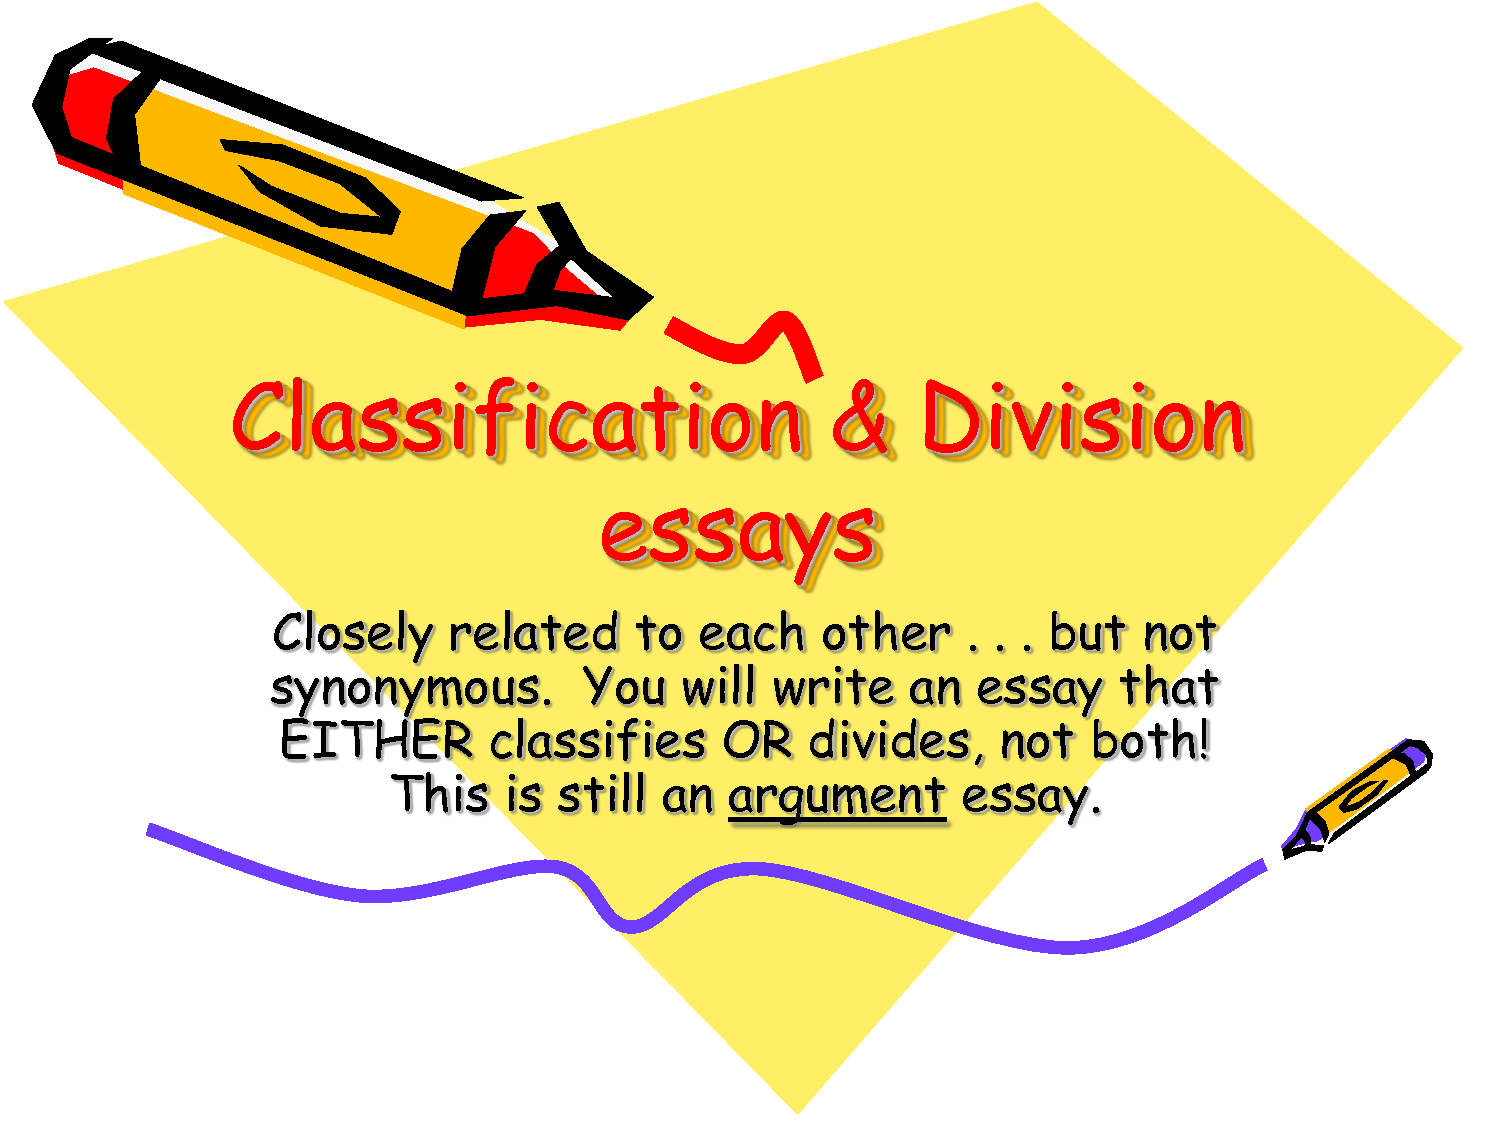 classification essay drivers conclusion